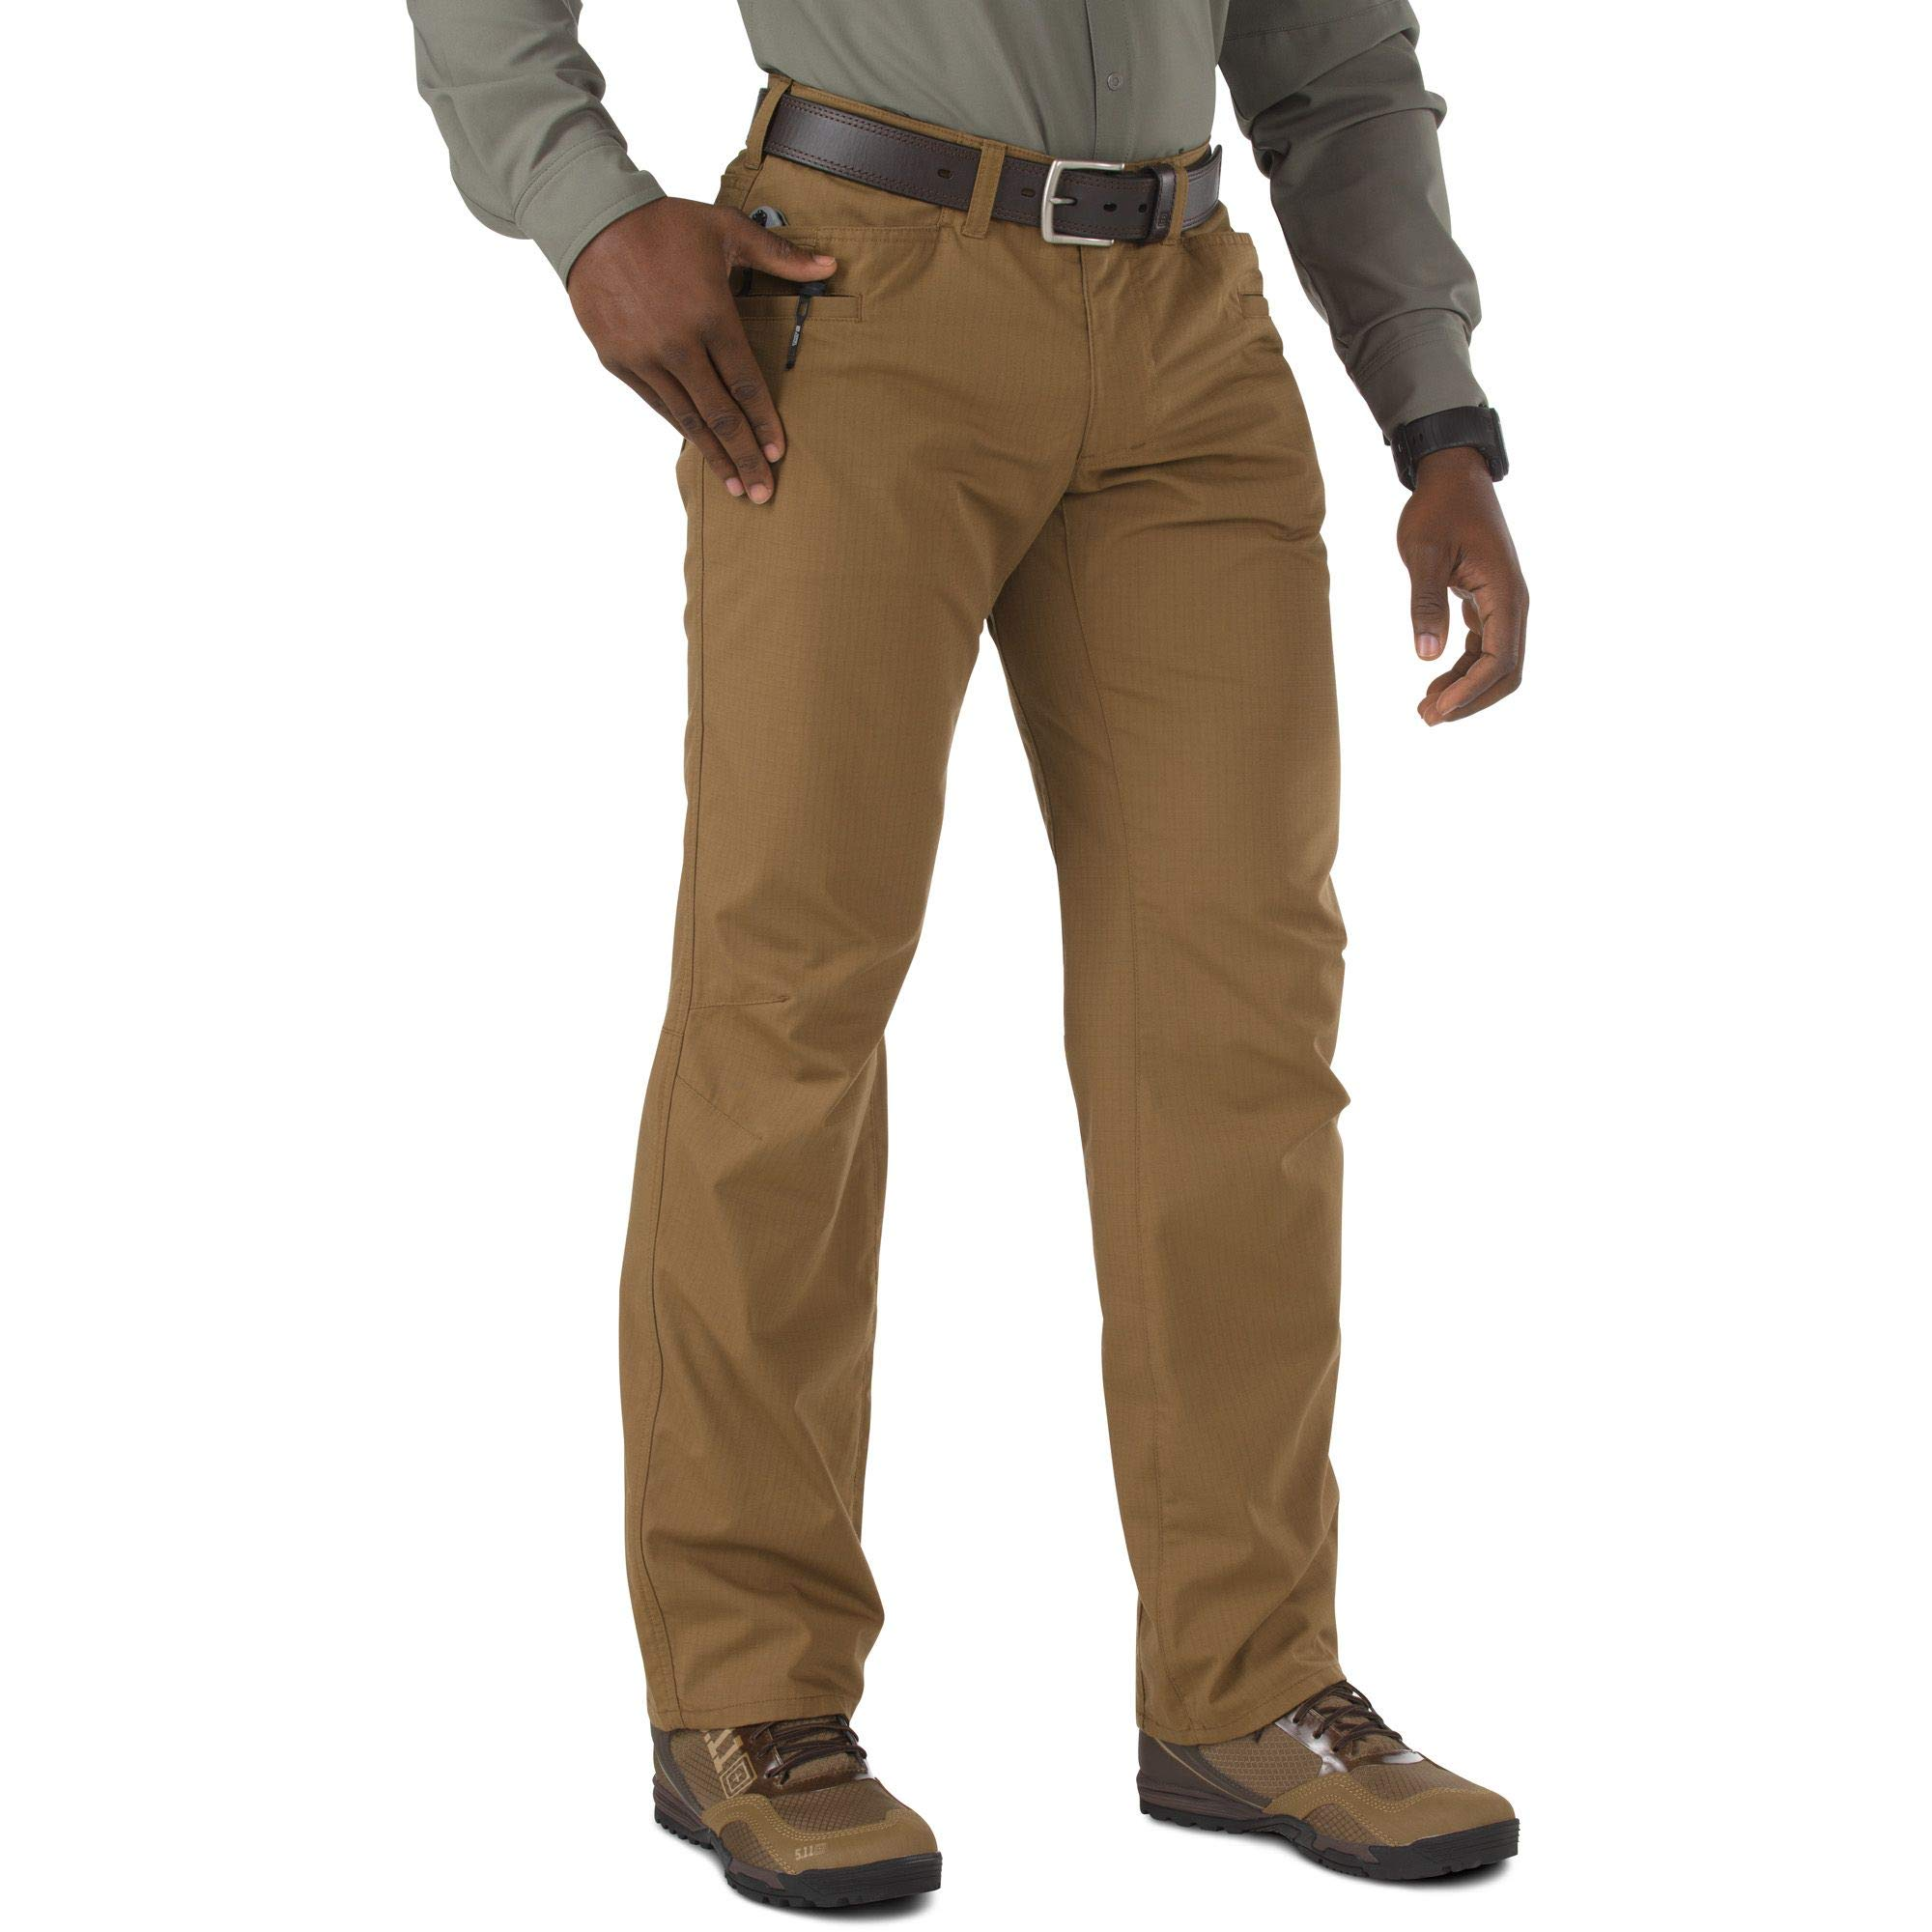 5.11 Tactical Men's Ridgeline Covert Work Pants, Teflon Finish, Poly-Cotton Ripstop Fabric, Battle Brown, Style 74411 by 5.11